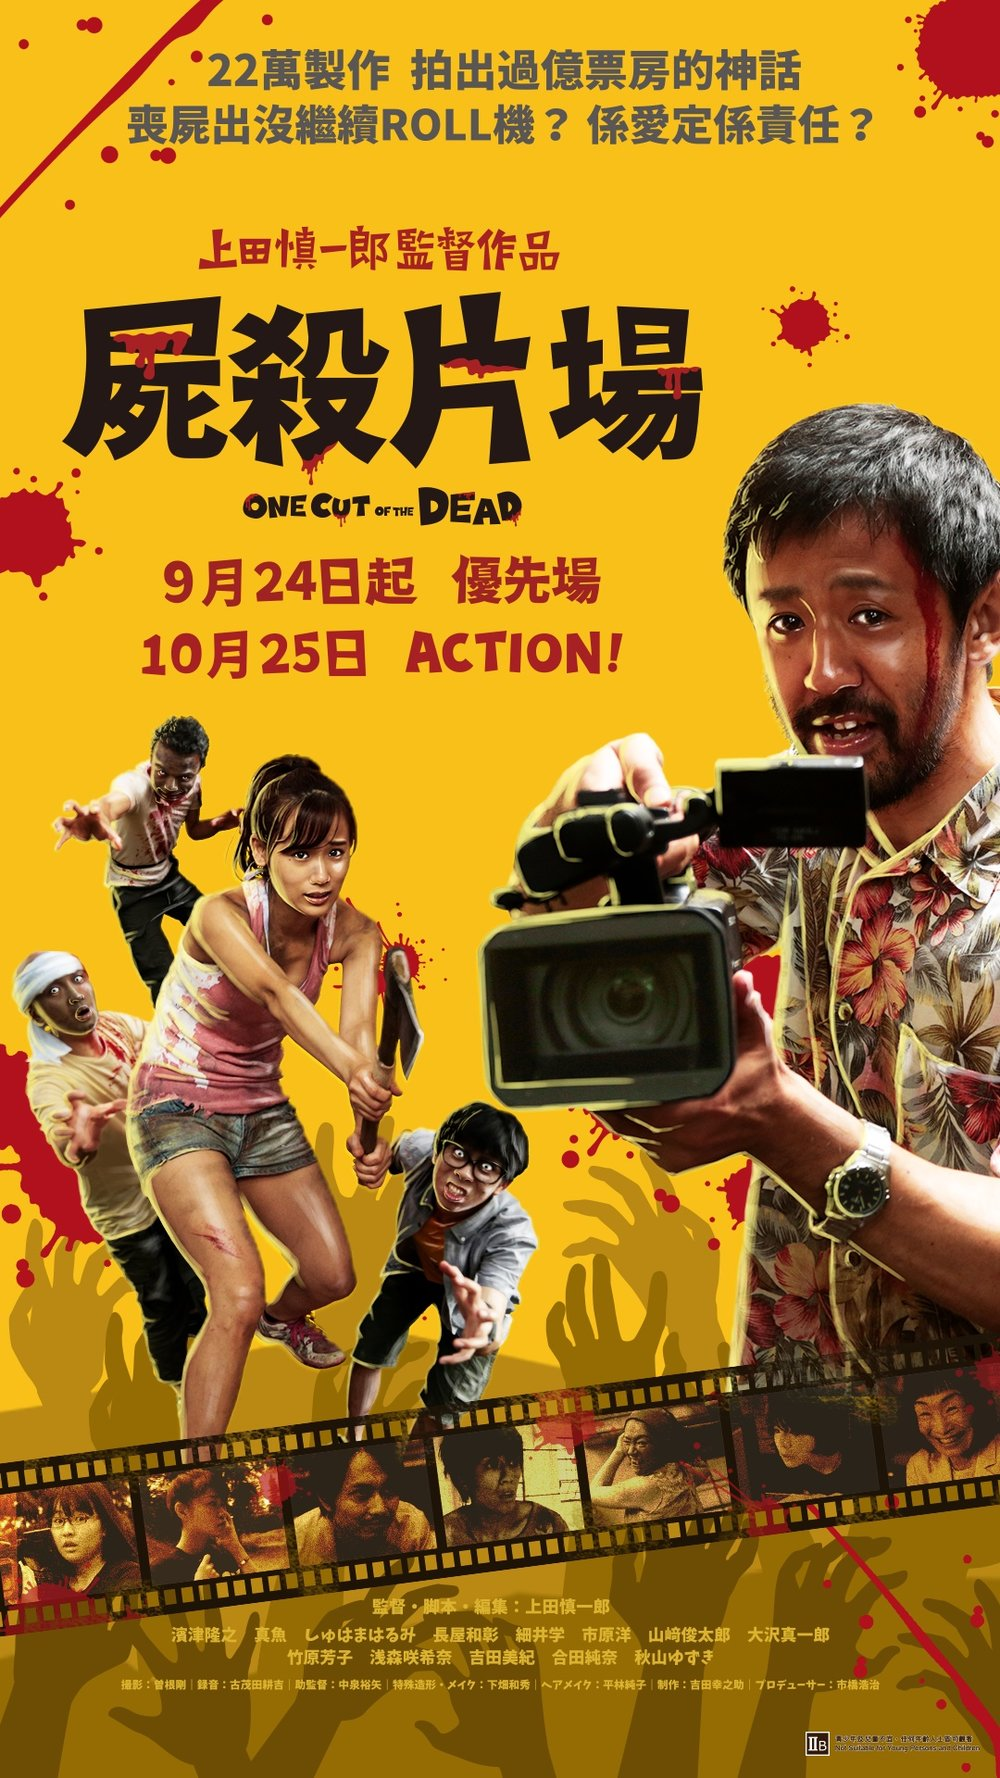 20180917_OneCutoftheDead_Poster.jpg